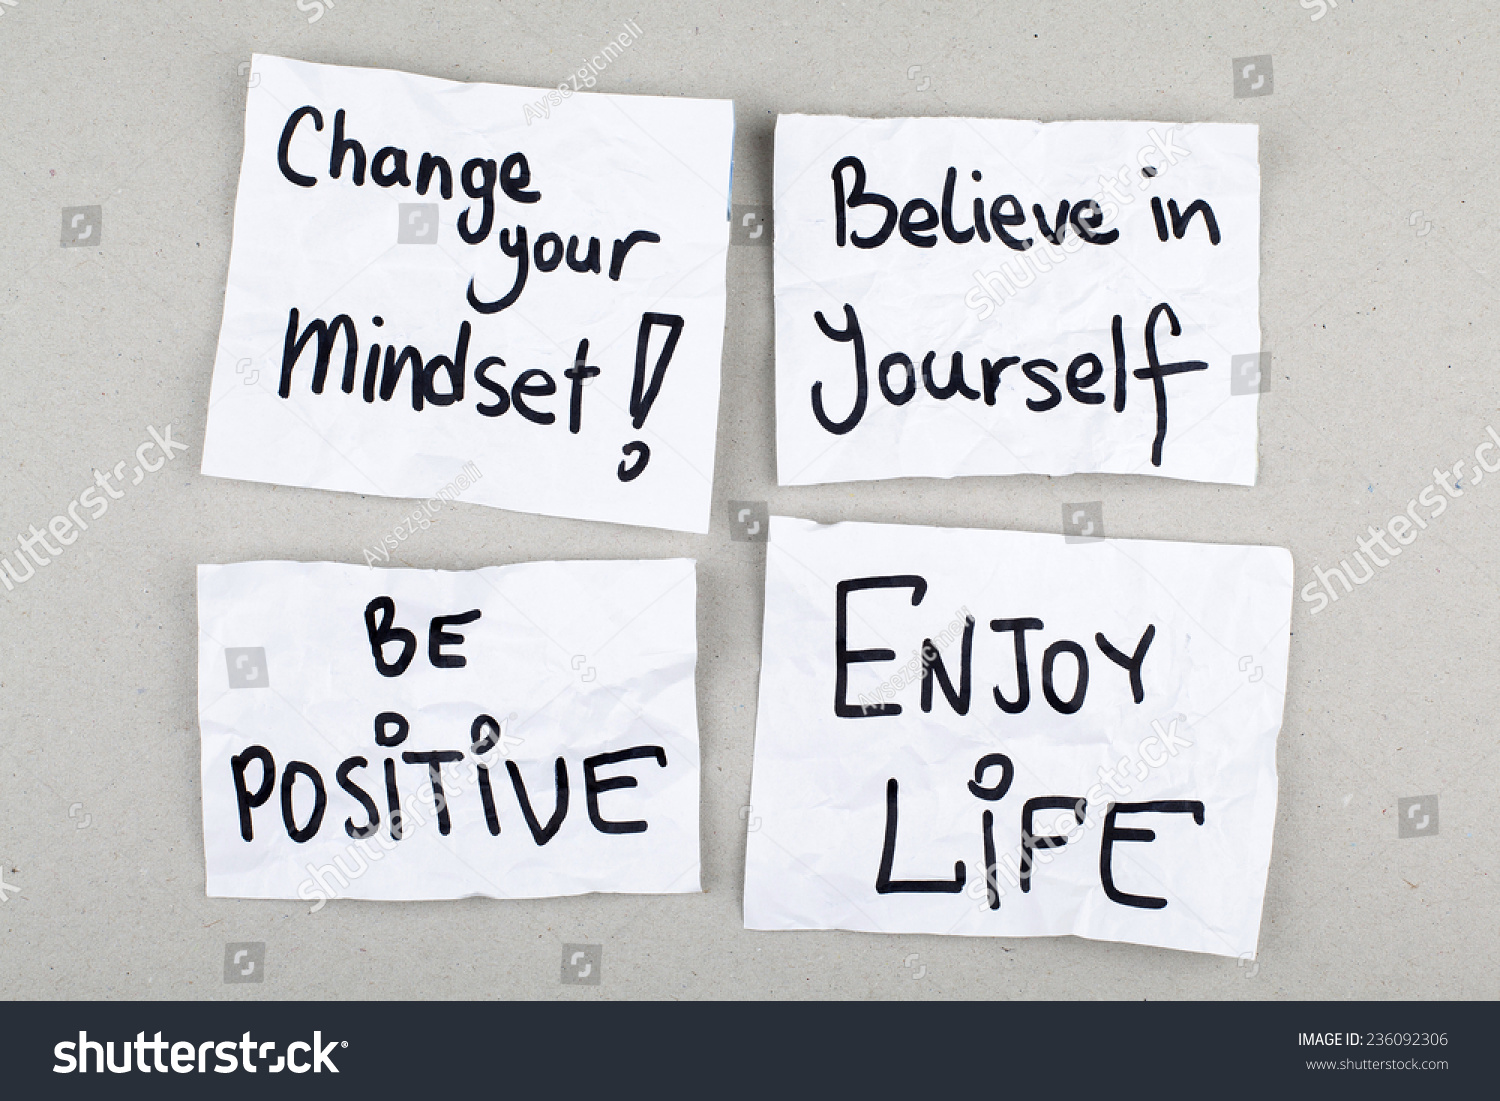 Positive Quotes About Change Motivational Inspirational Positive Quotes Phrases Change Stock